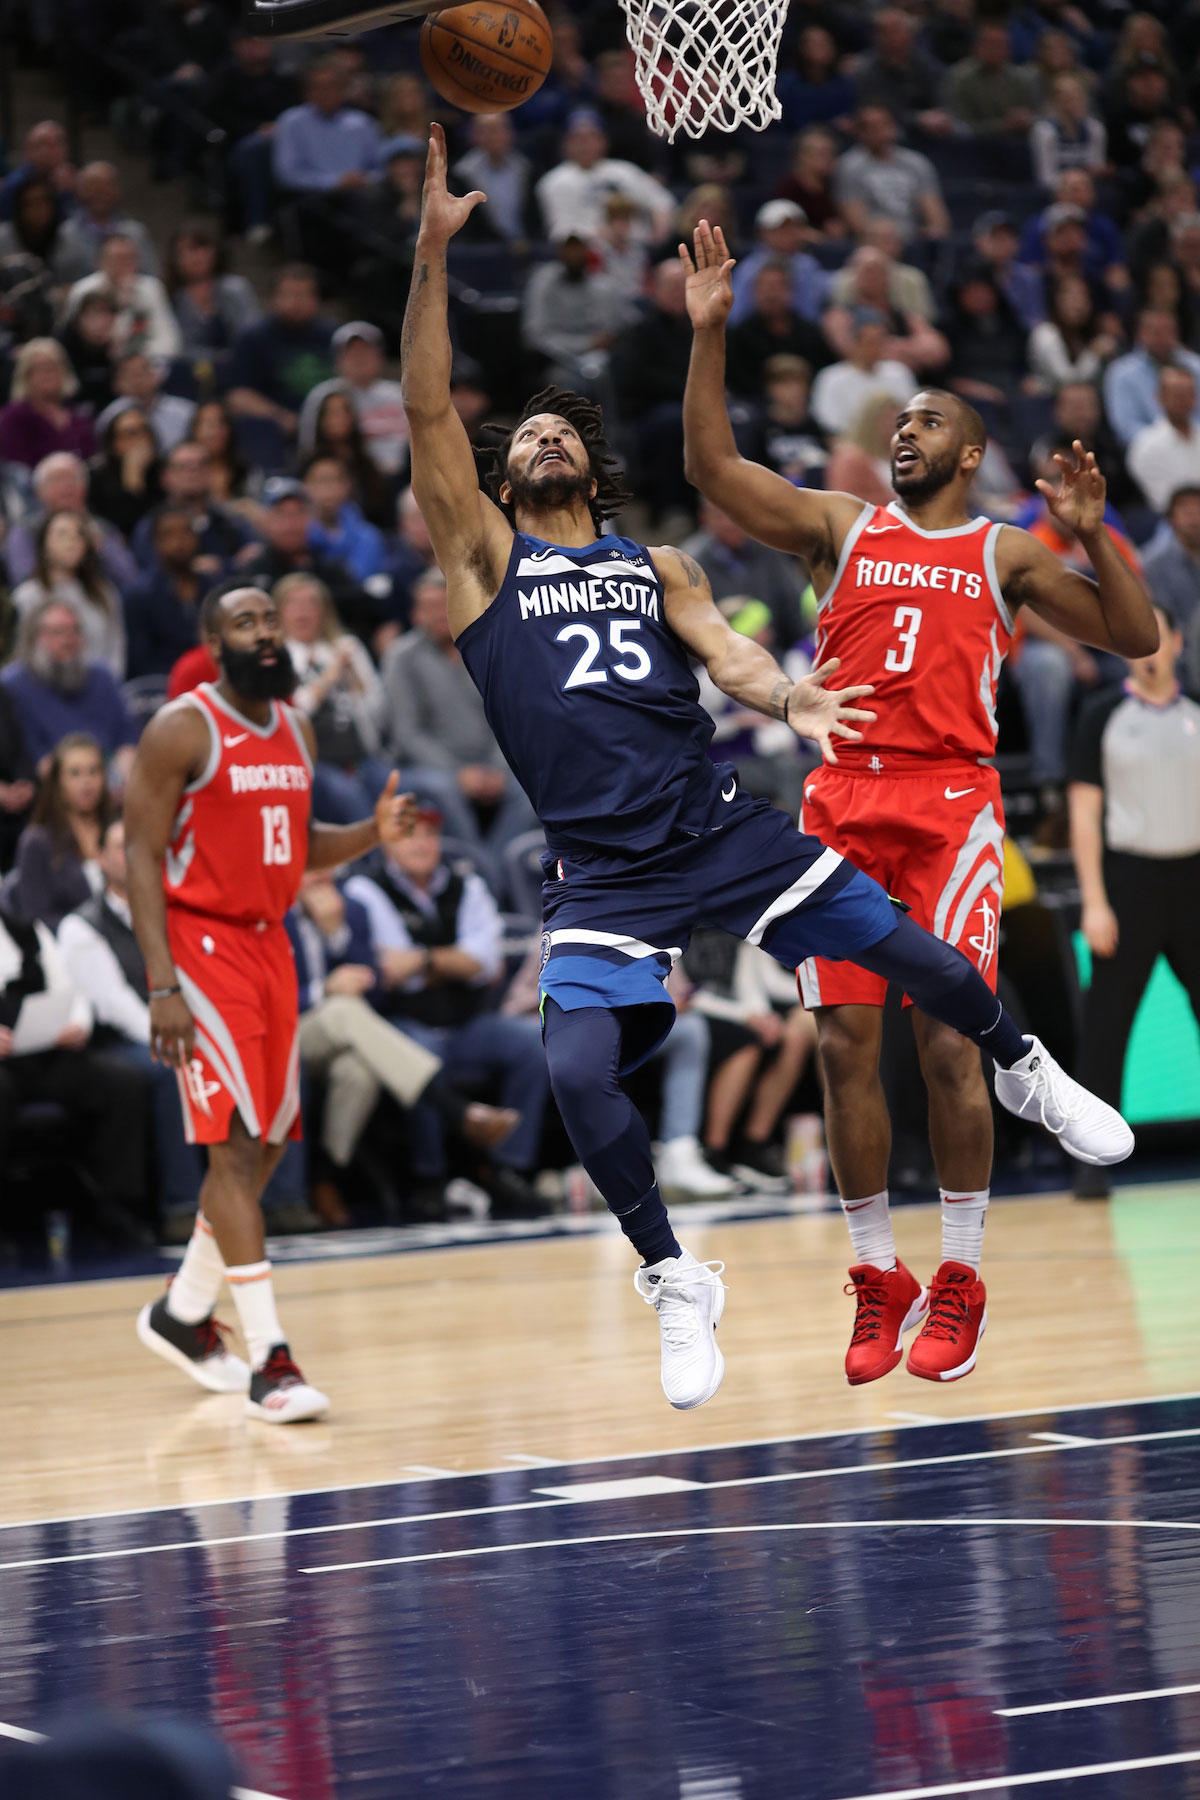 Derrick Rose #25 of the Minnesota Timberwolves shoots a lay up against Chris Paul #3 of the Houston Rockets on March 18, 2018 at Target Center in Minneapolis, Minnesota.